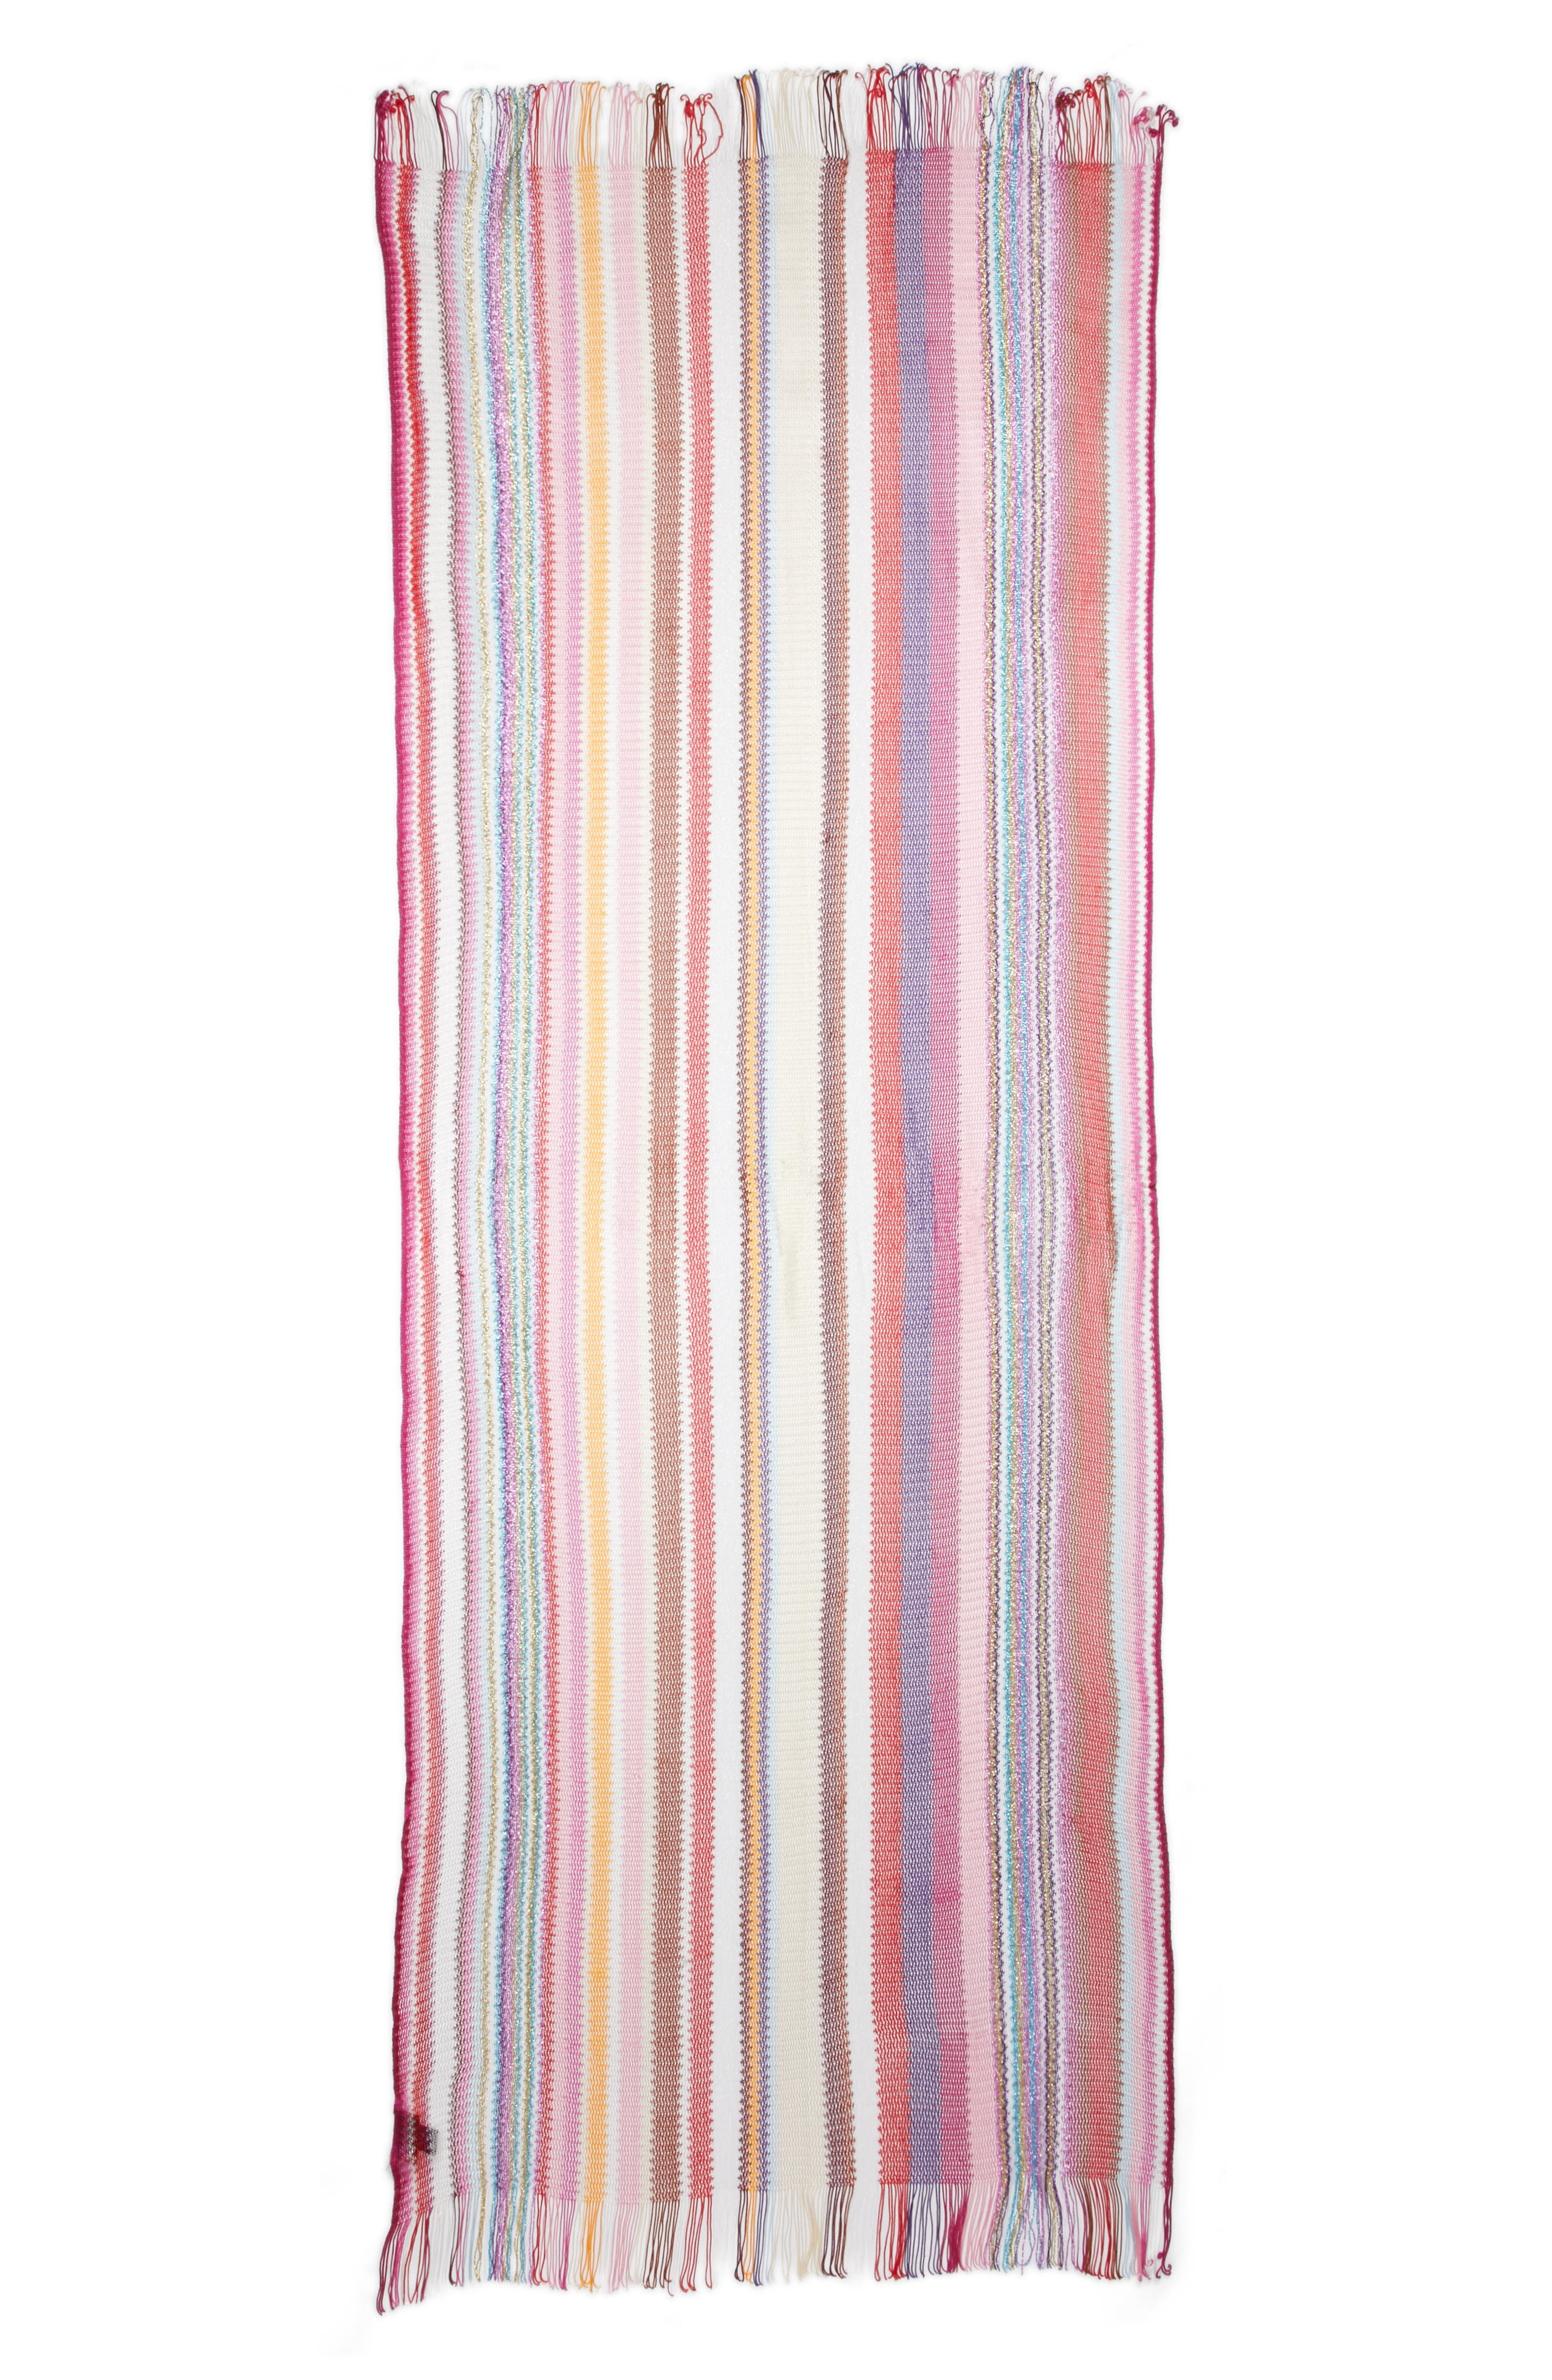 Zigzag Stripe Stole,                             Main thumbnail 1, color,                             MULTI PINK